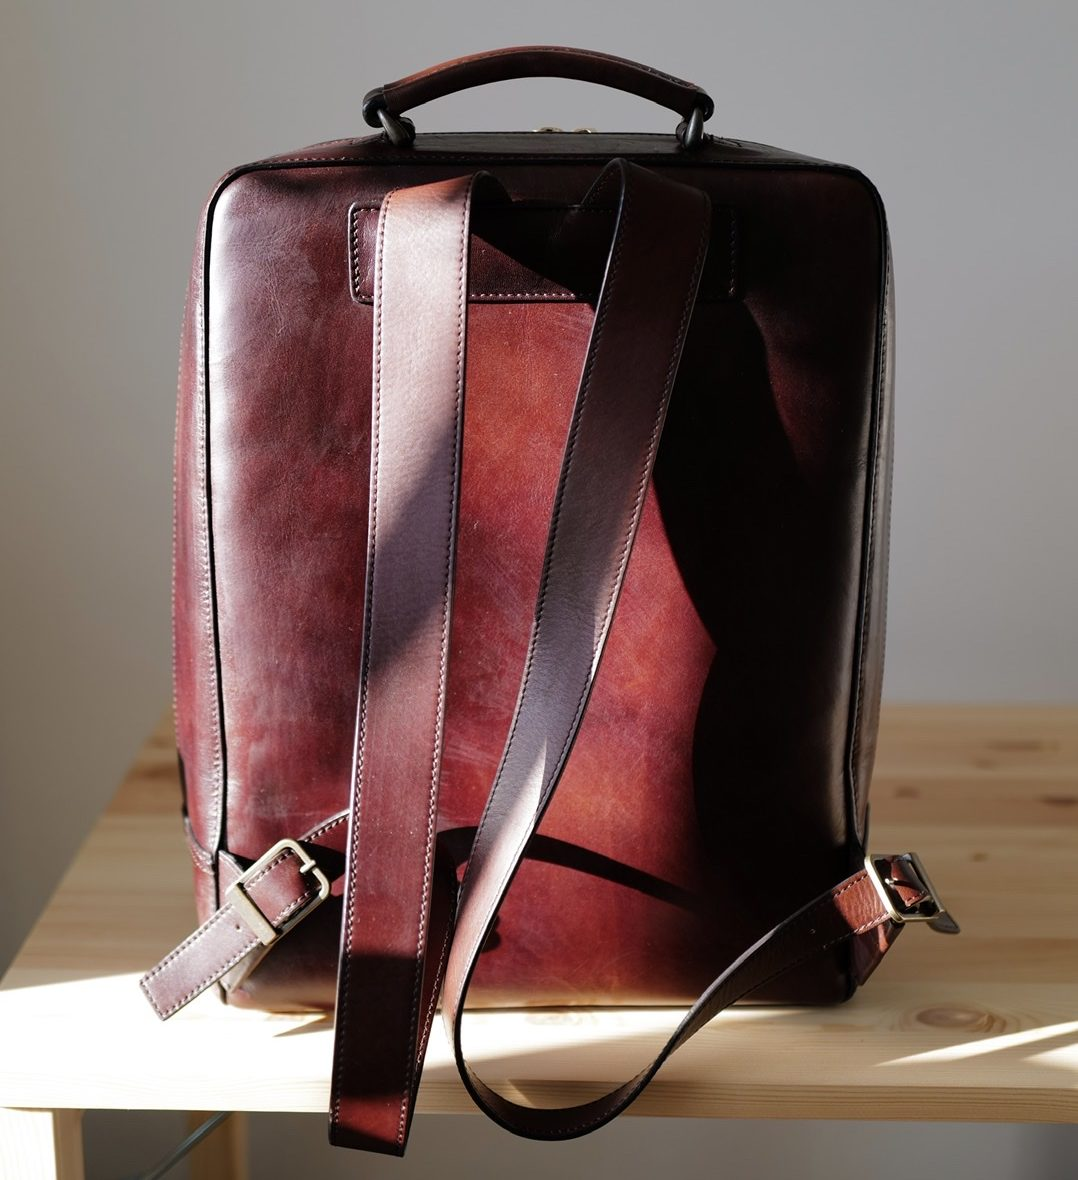 Antique Square Backpack クリーム塗った後 1年